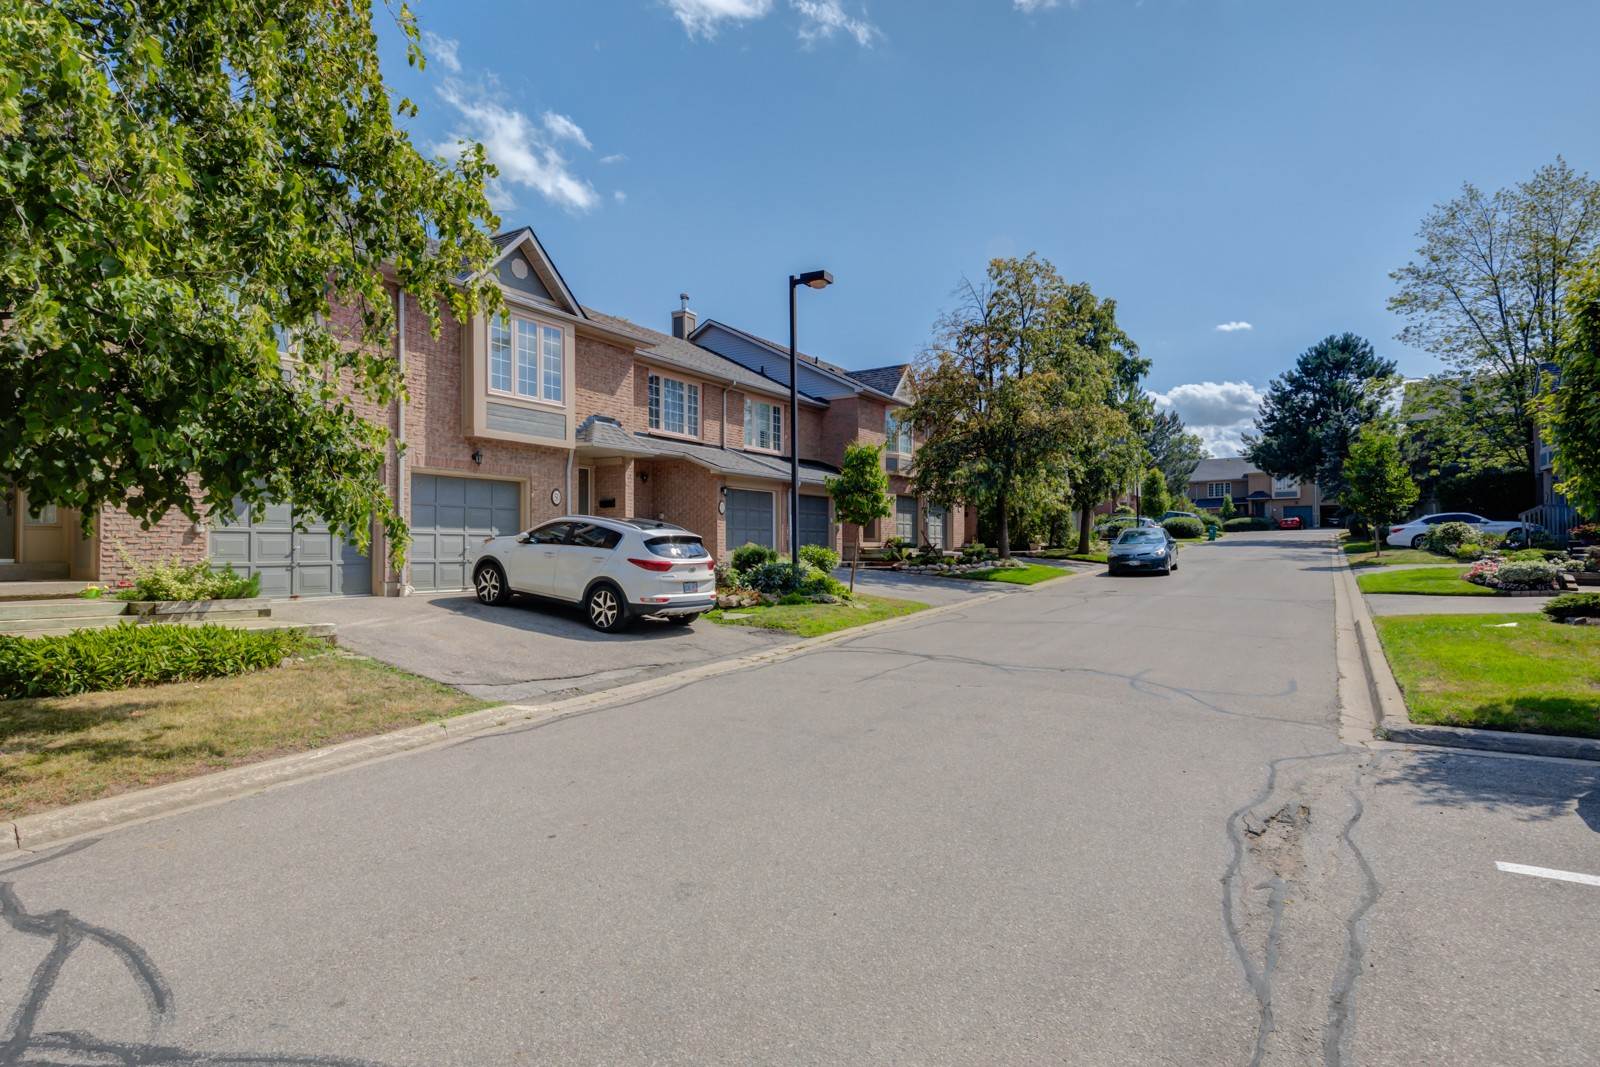 3100 Fifth Line West Townhouses at 3100 Fifth Line W, Mississauga 0